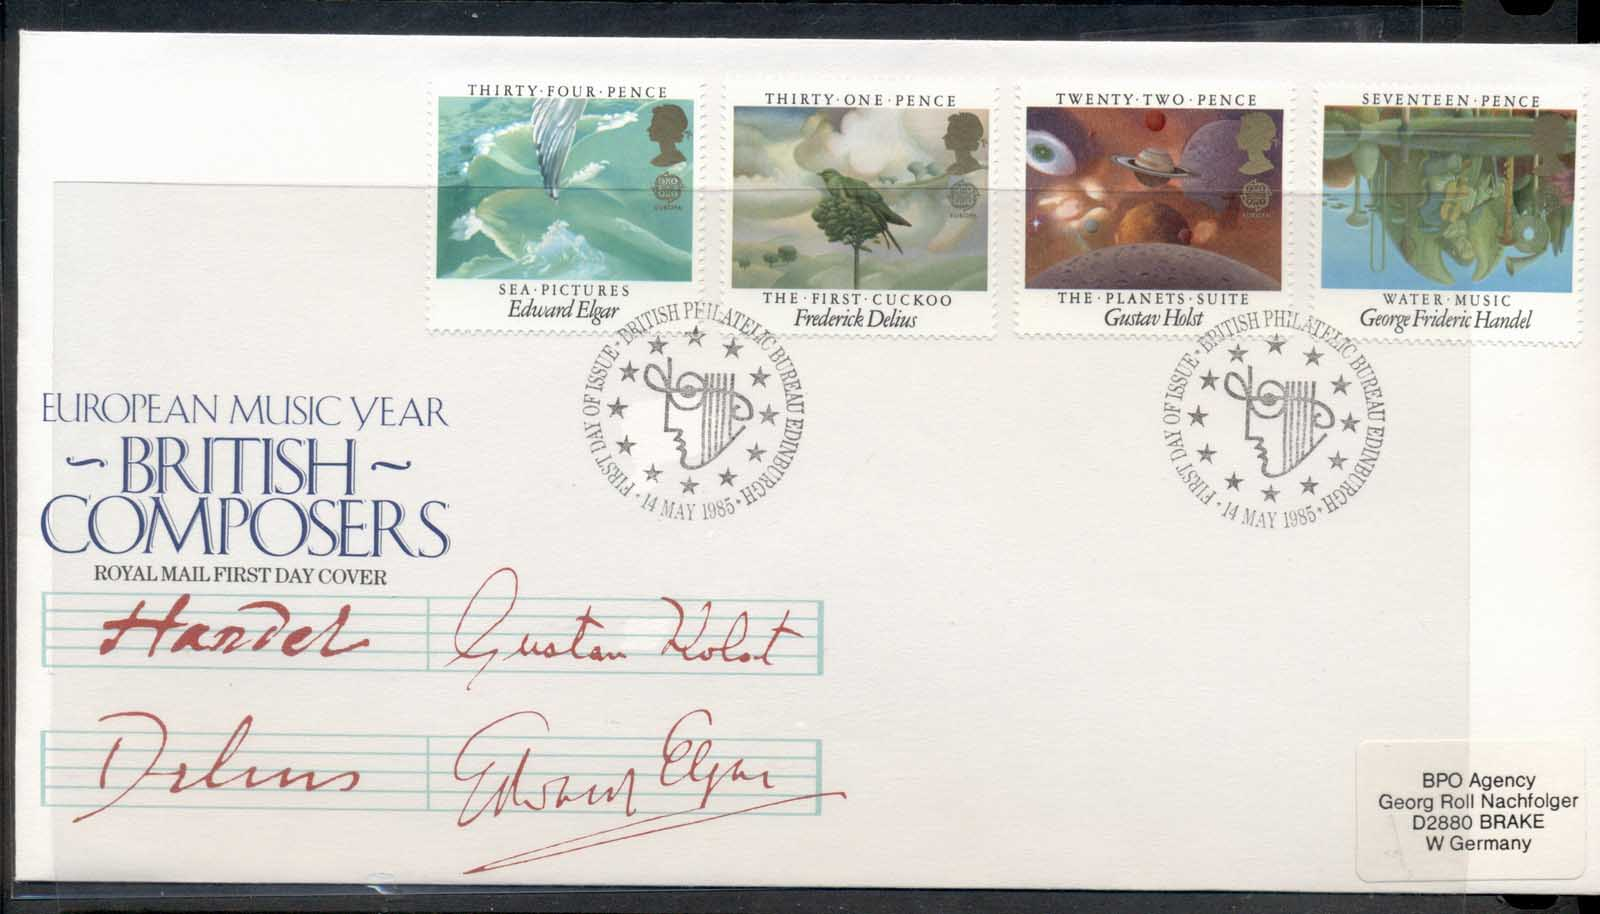 GB 1985 Europa Music Year FDC